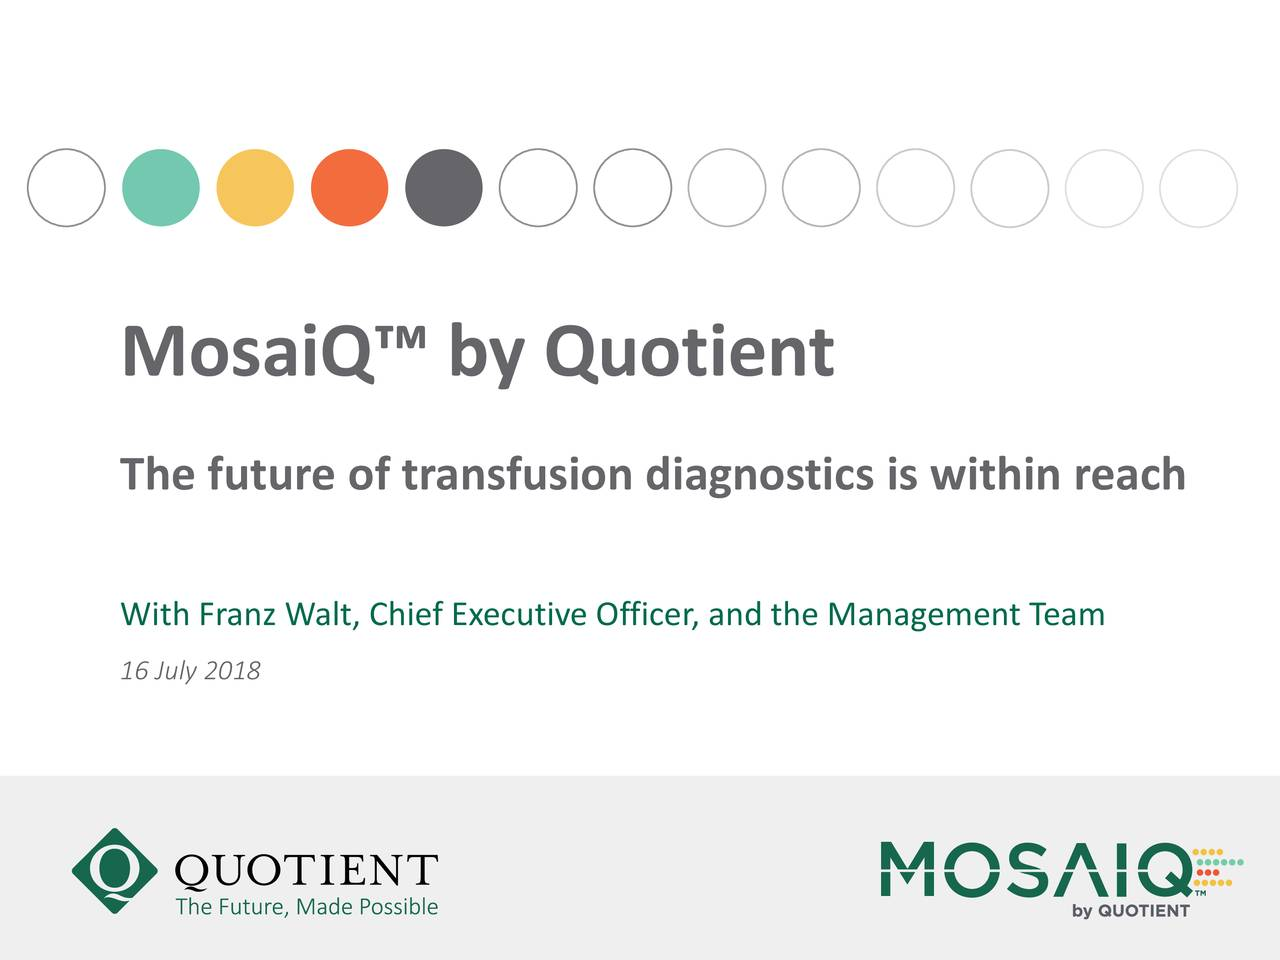 The future of transfusion diagnostics is within reach With Franz Walt, Chief Executive Officer, and the Management Team 16 July 2018